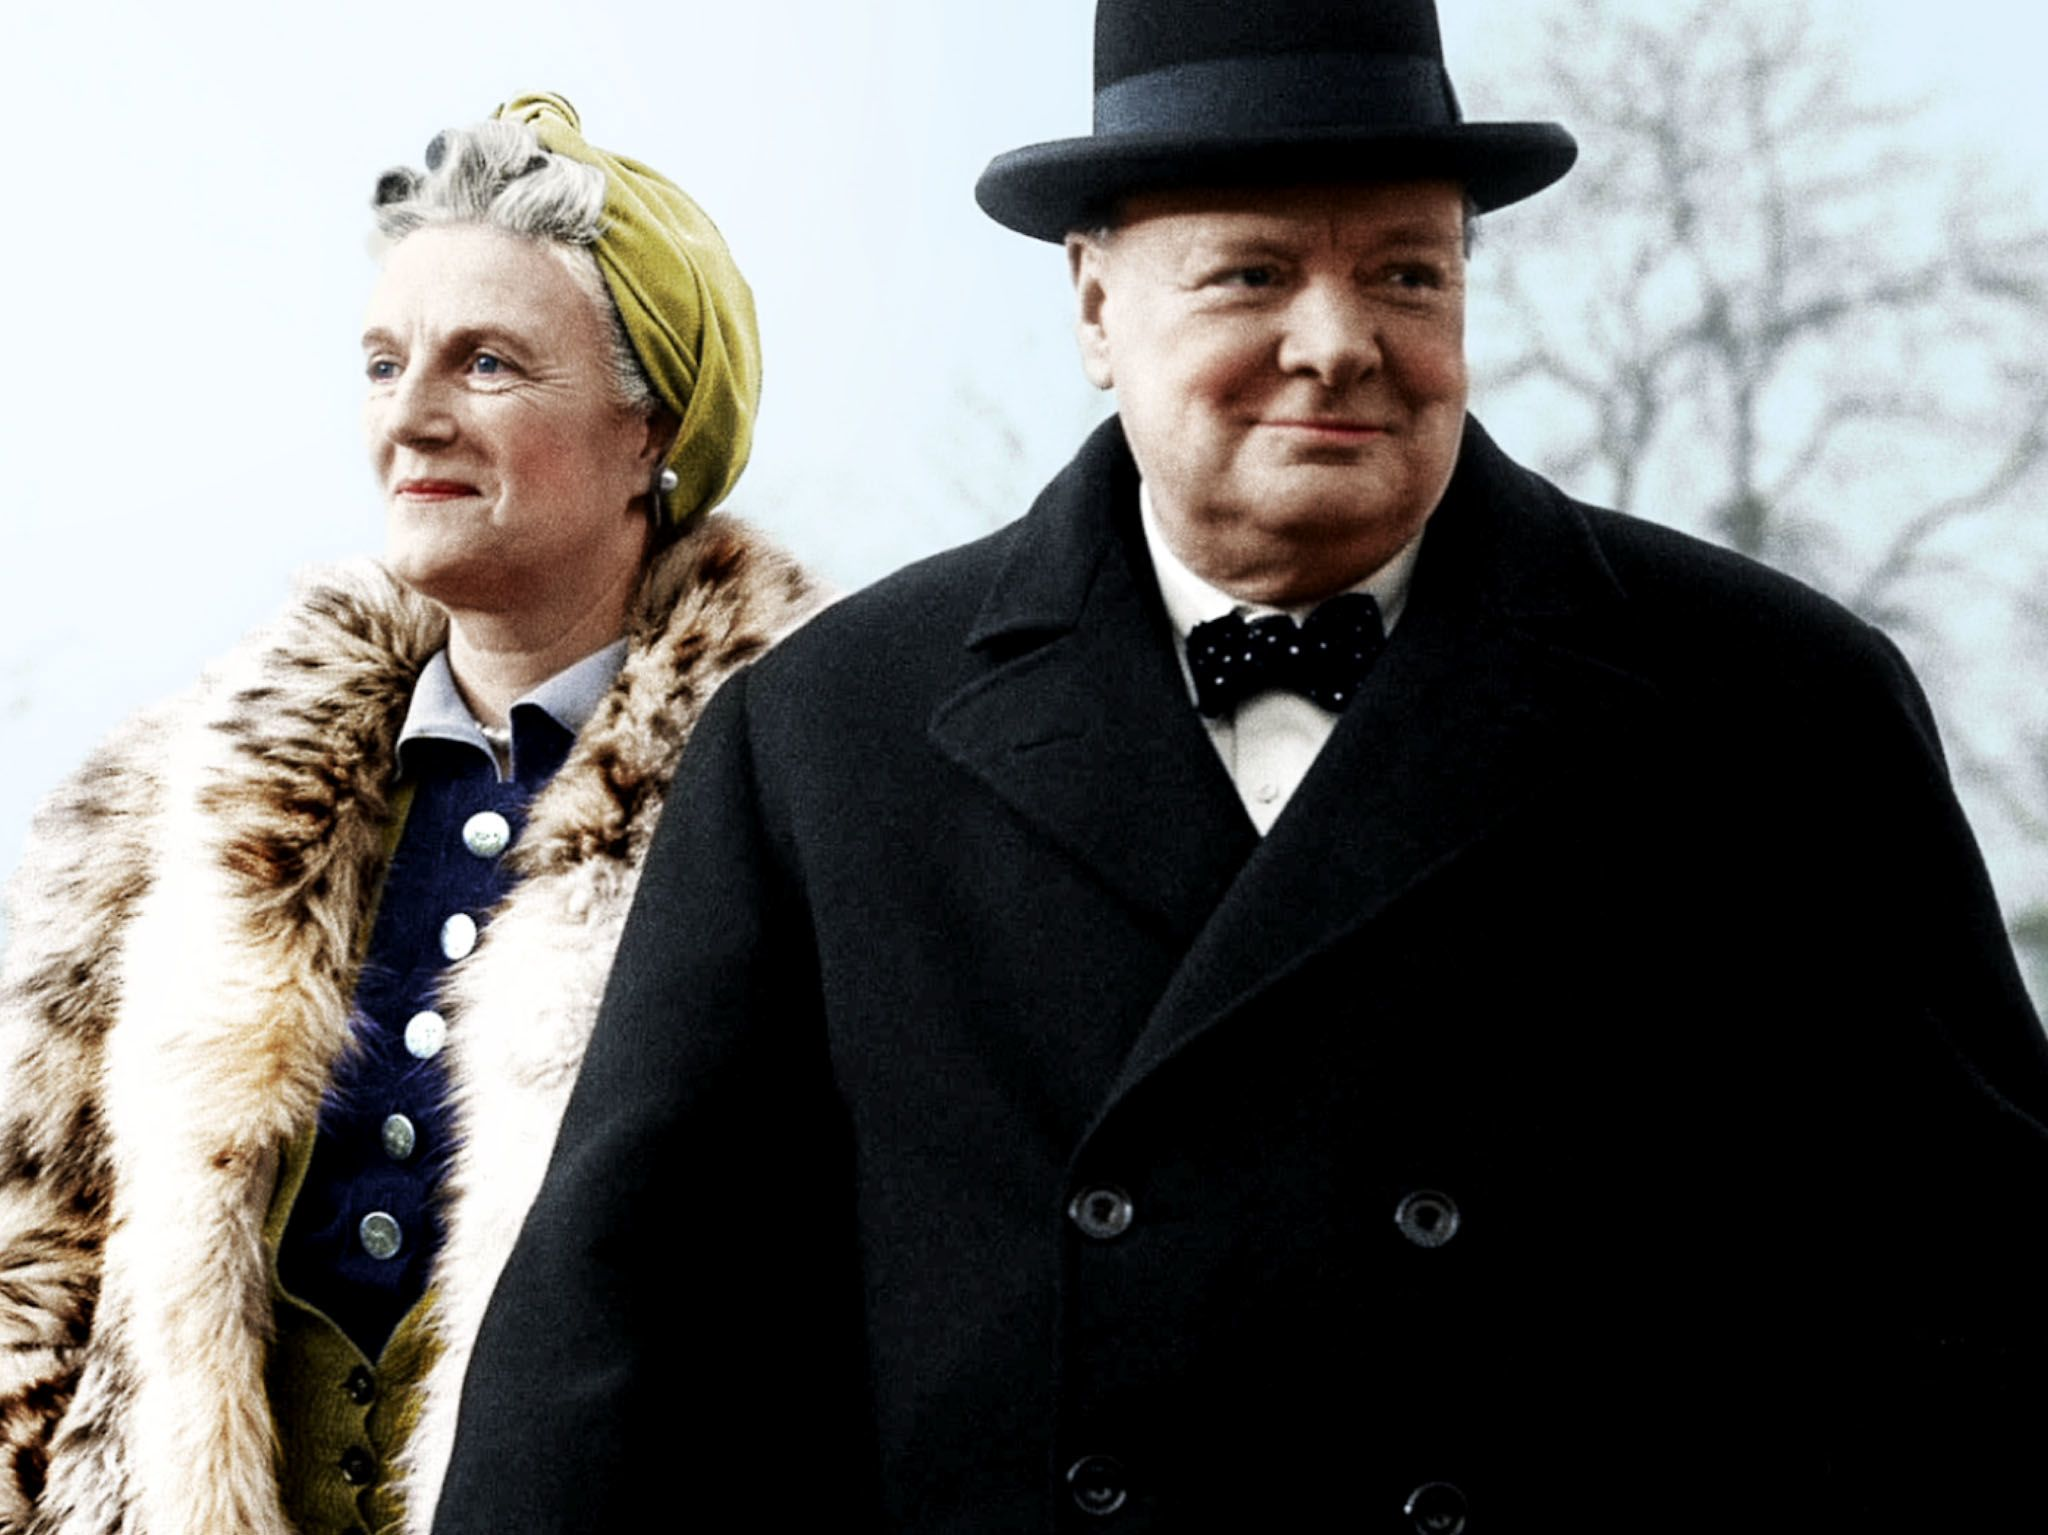 Winston Churchill and his wife Clementine. This image is from Apocalypse: Hitler Takes On The West. [Photo of the day - March 2021]